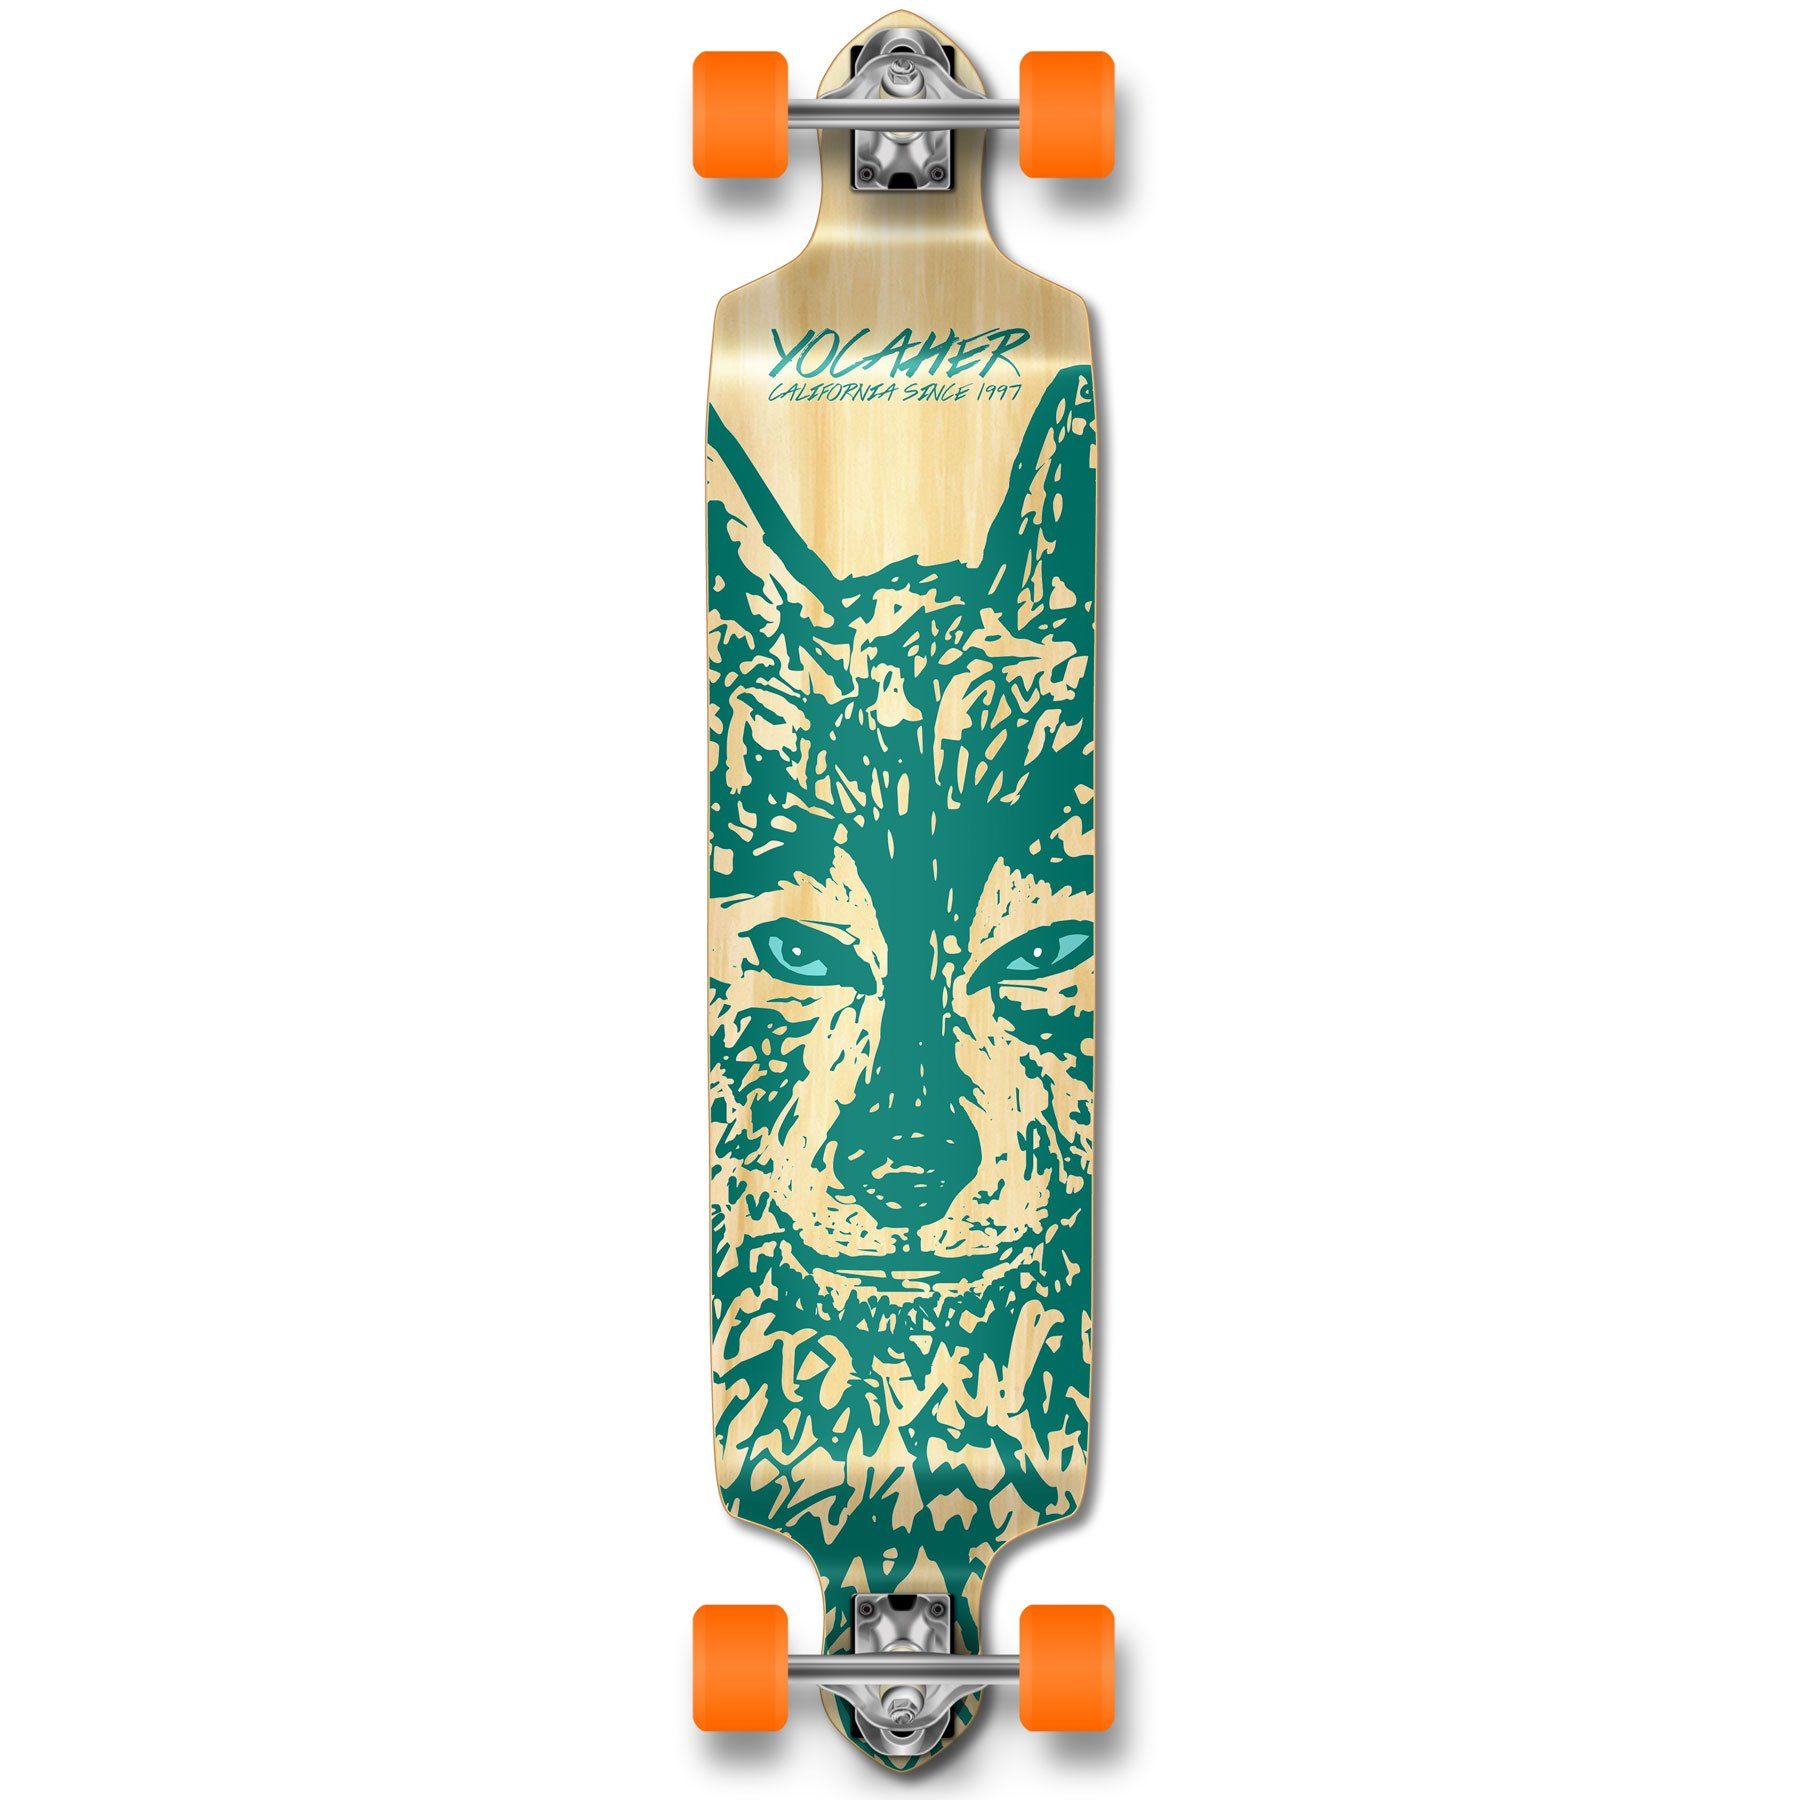 Yocaher Spirit Wolf Longboard Complete Skateboard Cruiser - Available in All Shapes (Drop Down)